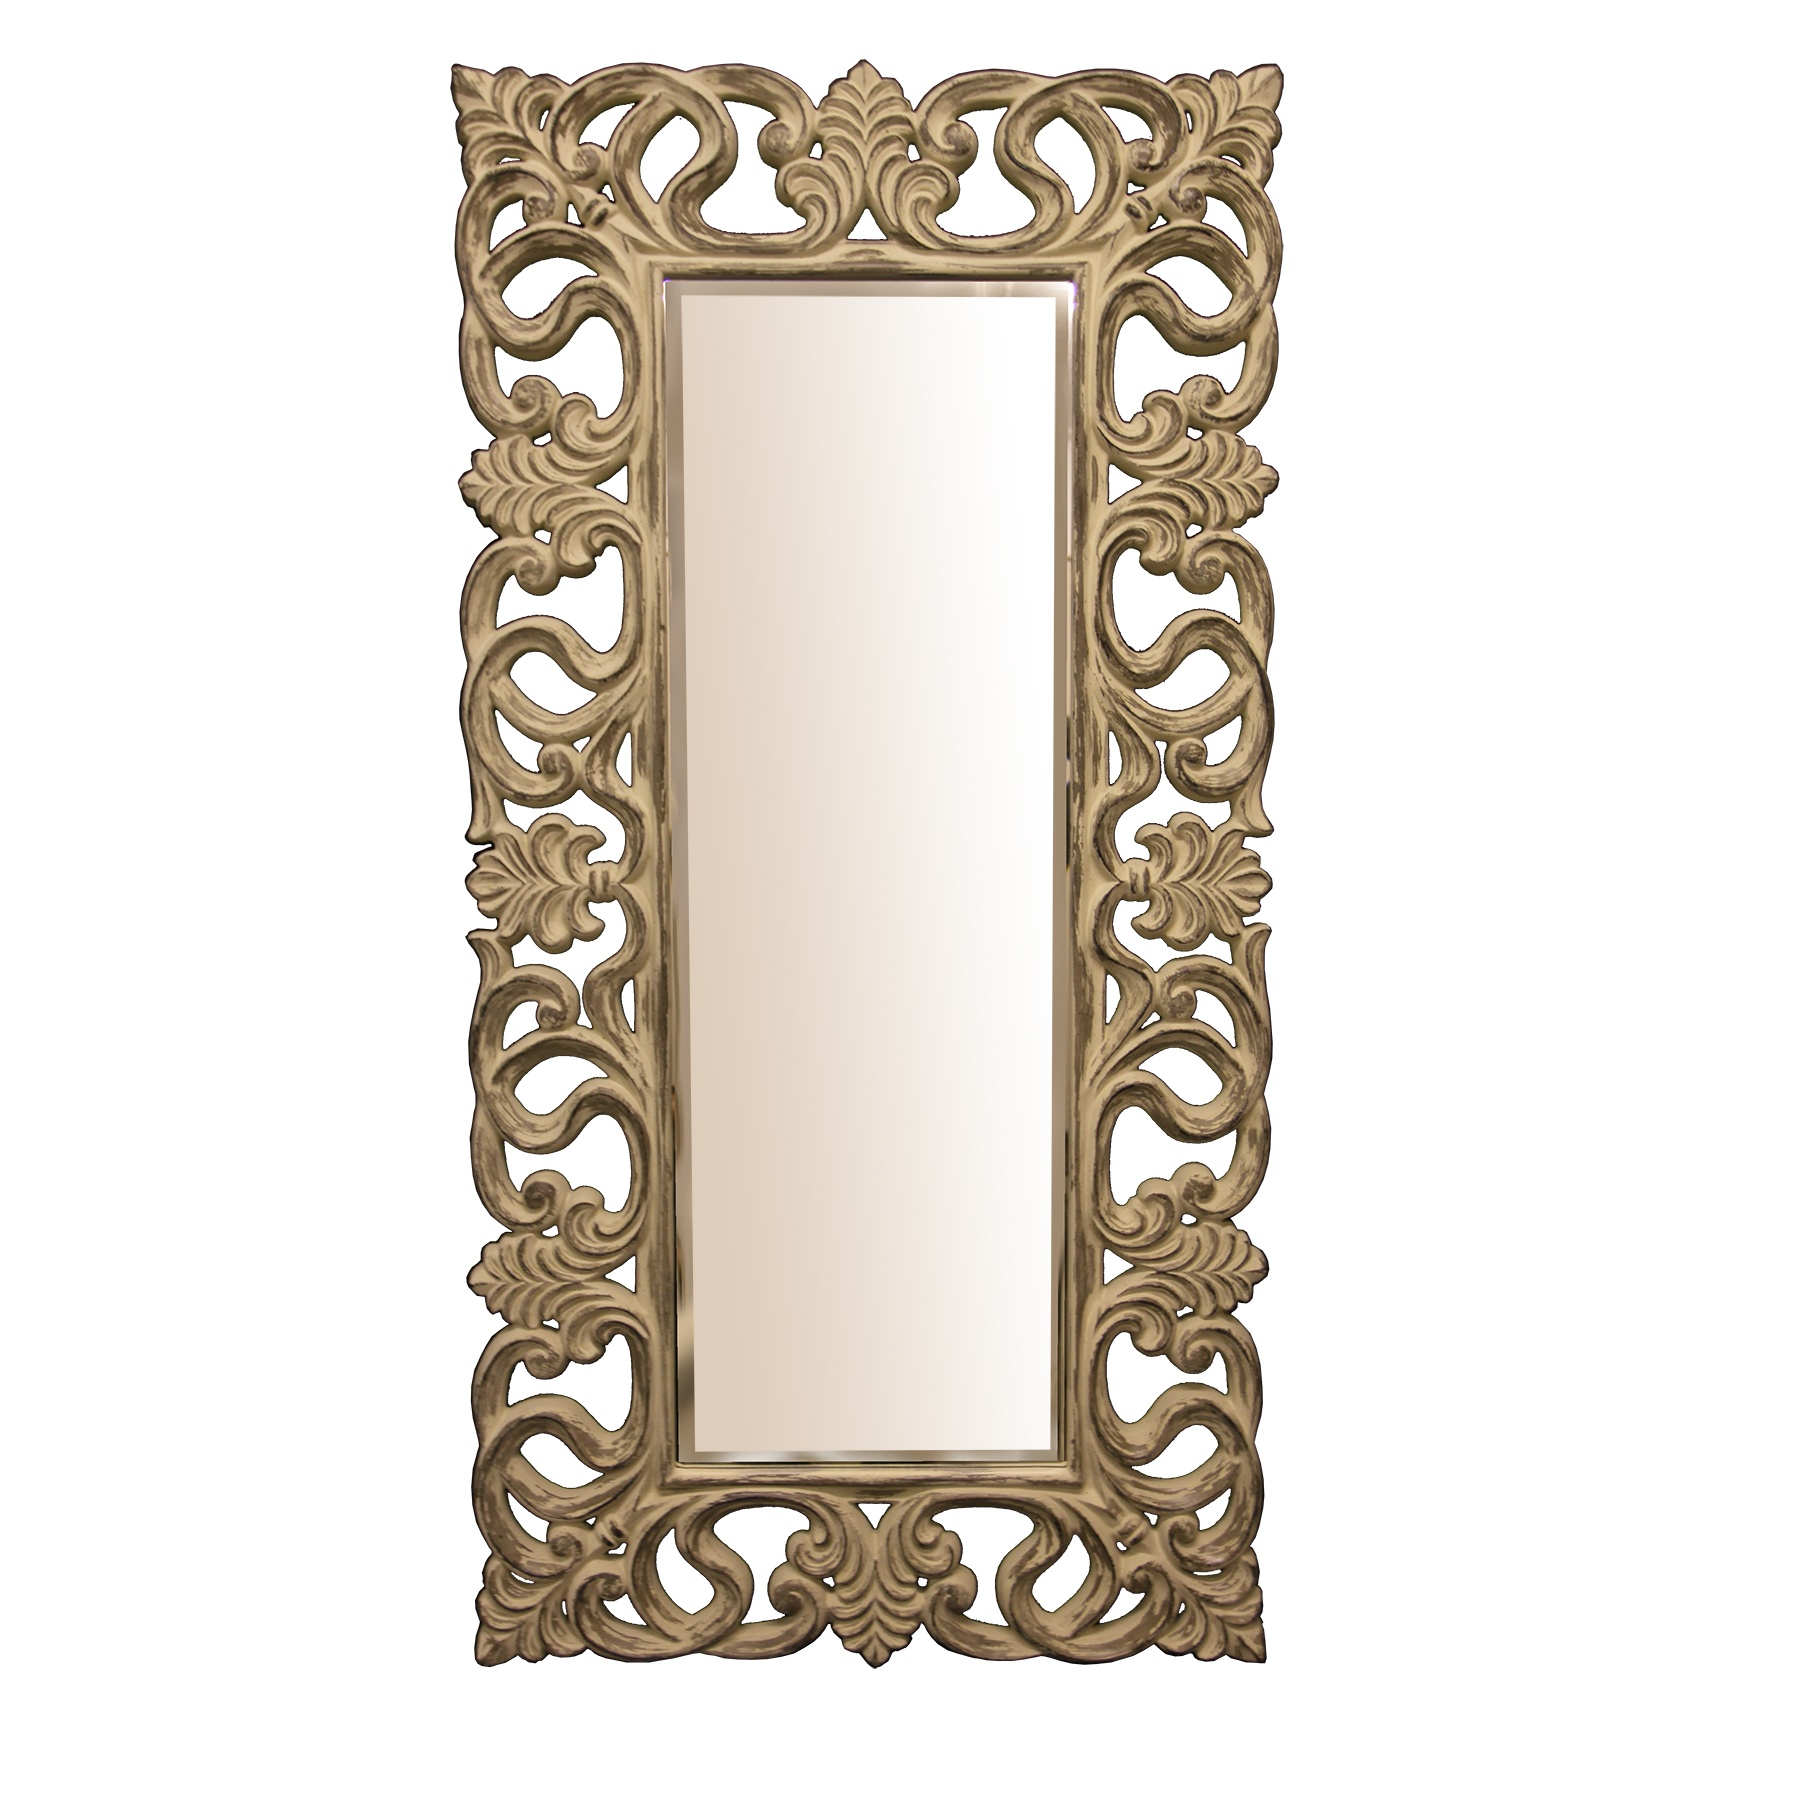 Greatest Full Length Mirror, Shabby Chic | Swanky Interiors LJ26